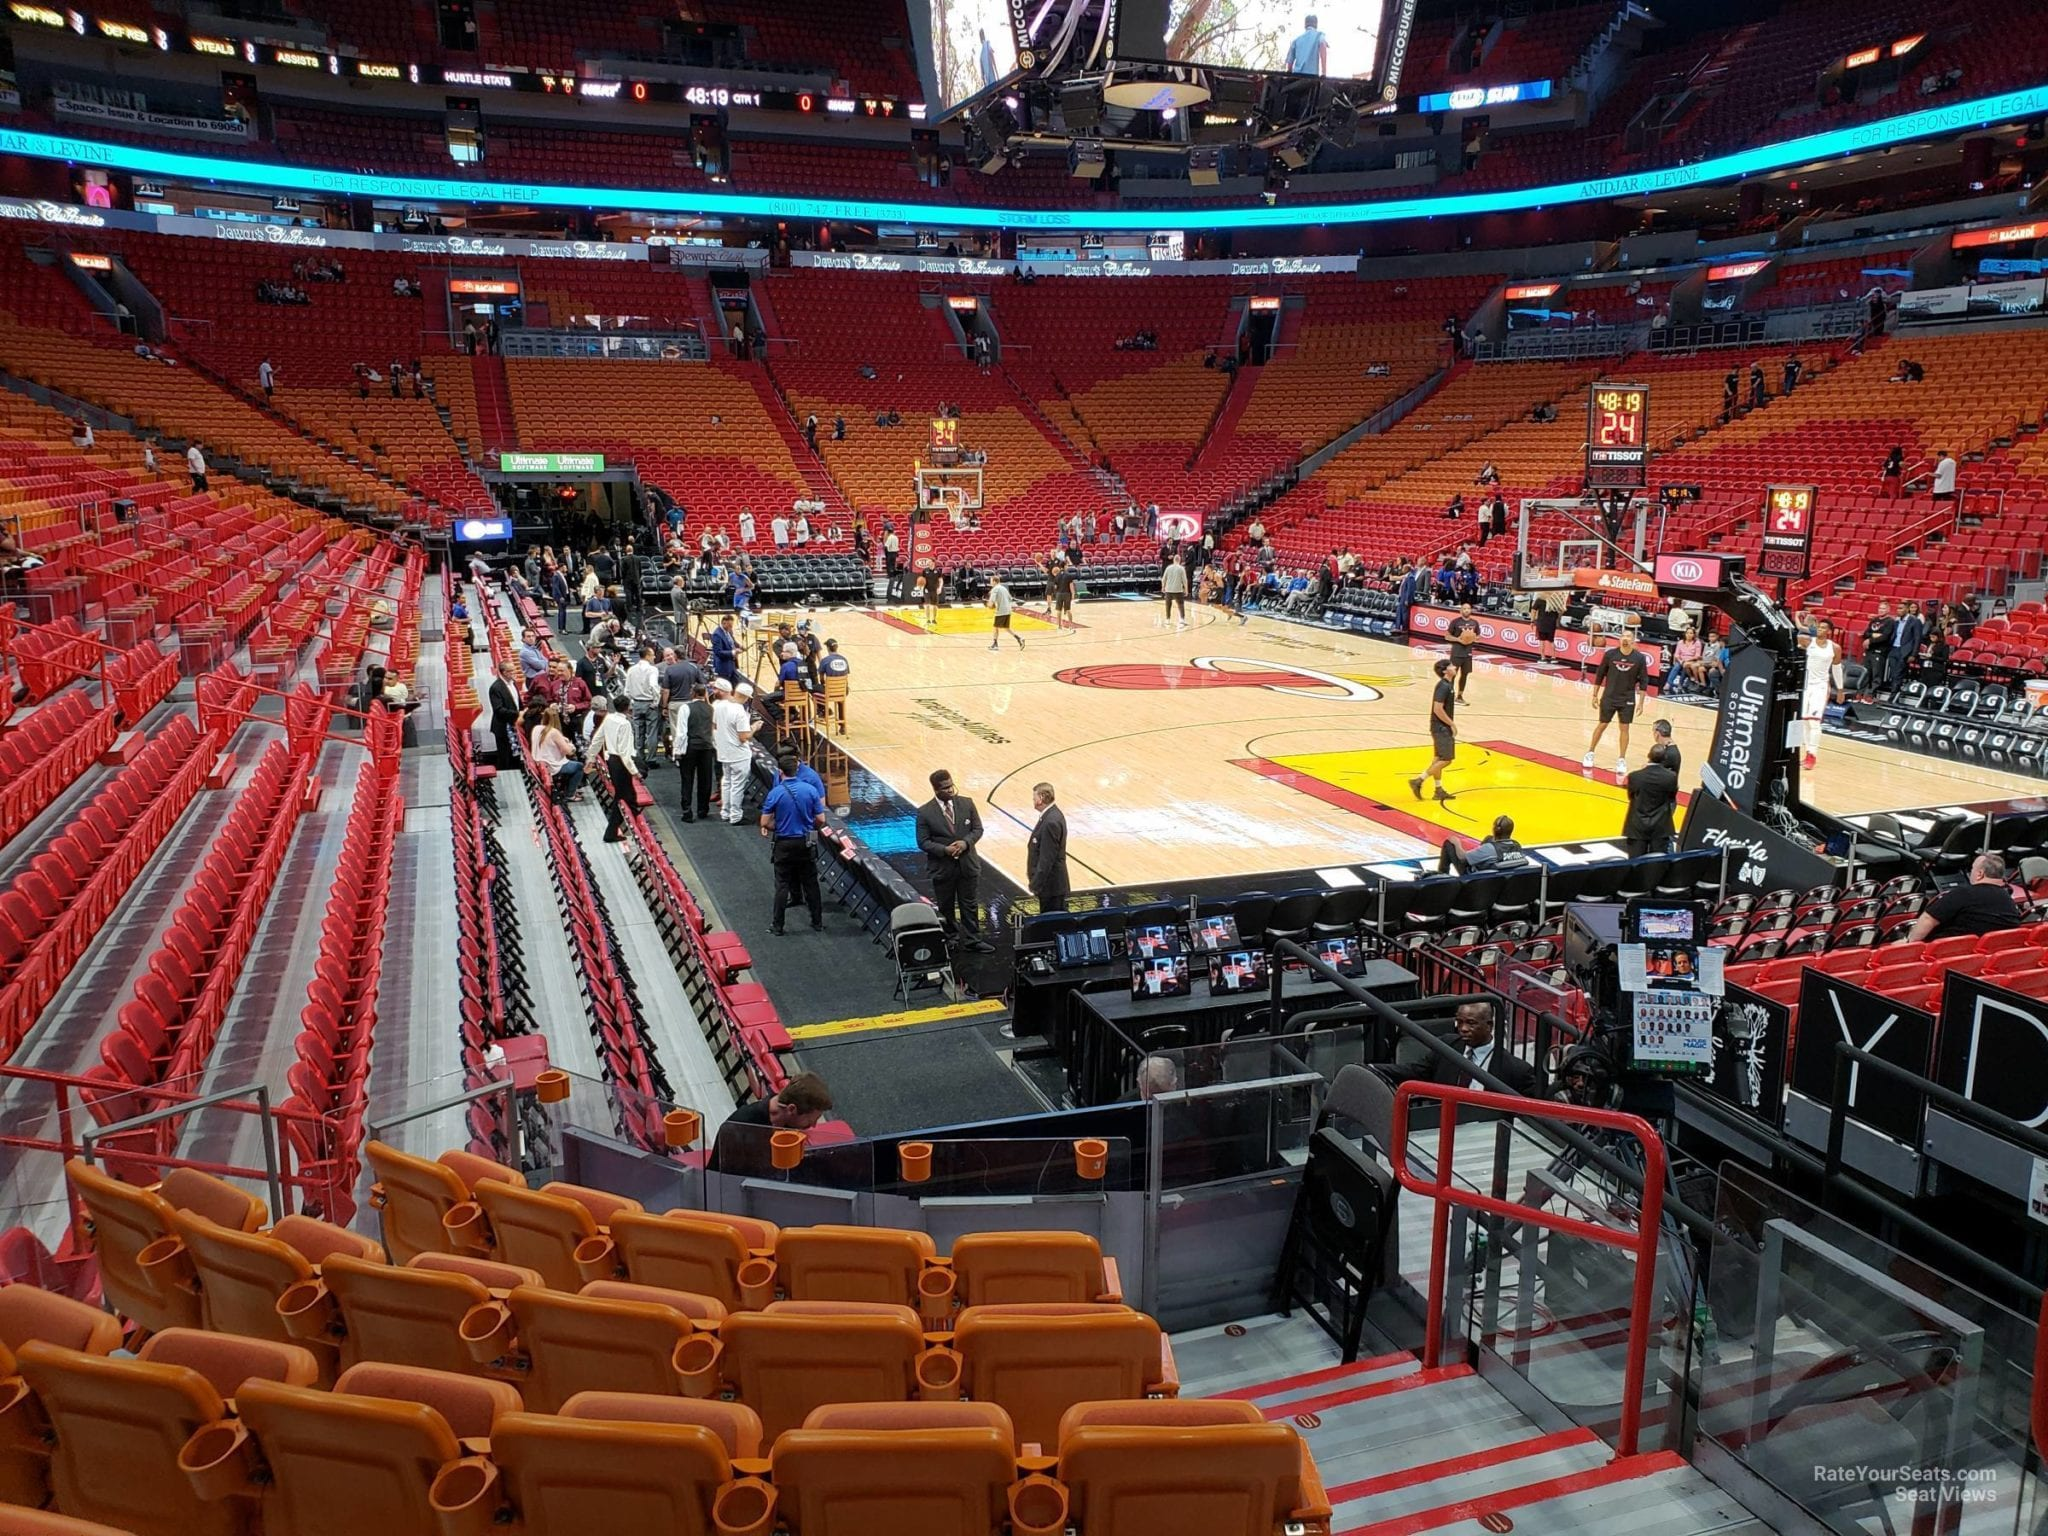 The lower bowl of the American Airlines Arena, home of the Miami Heat